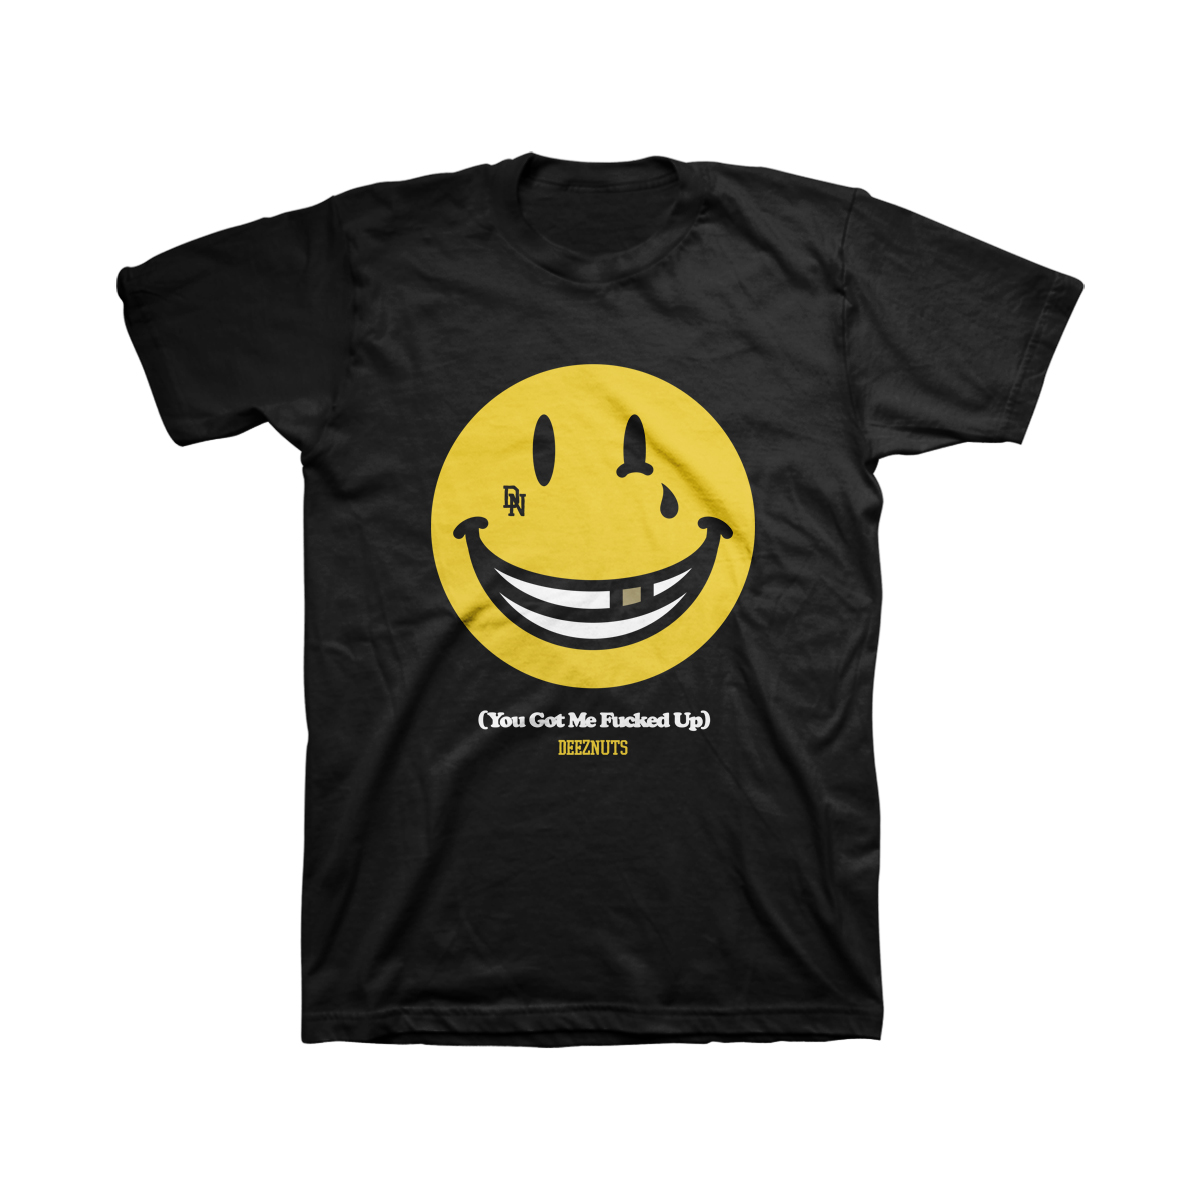 Deez Nuts - You Got Me Fucked Up T-Shirt